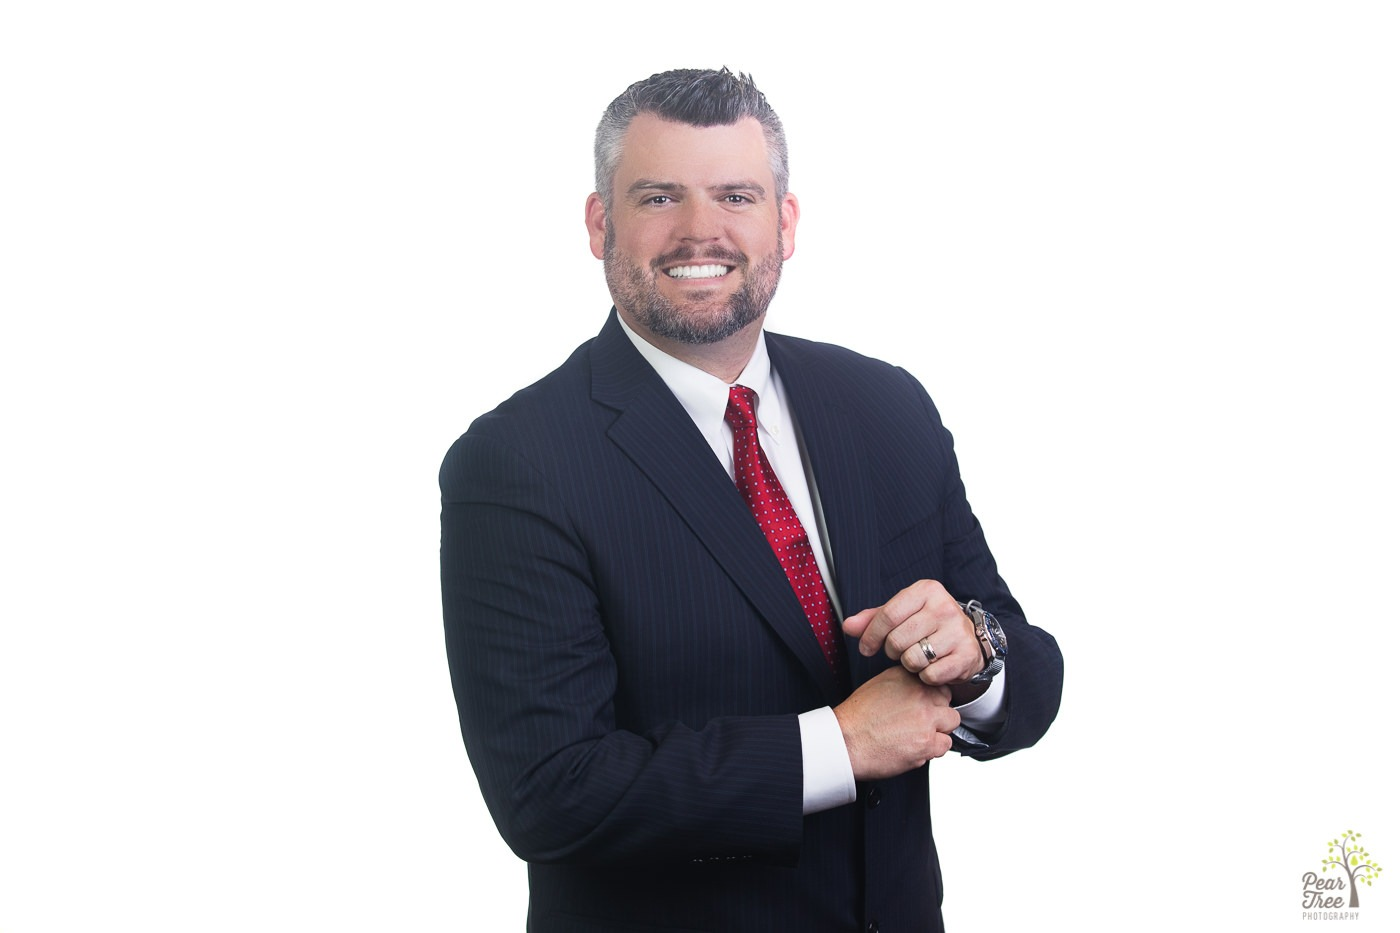 Professional headshot and branding shot of a man standing in dark suit with a red tie adjusting his sleeve